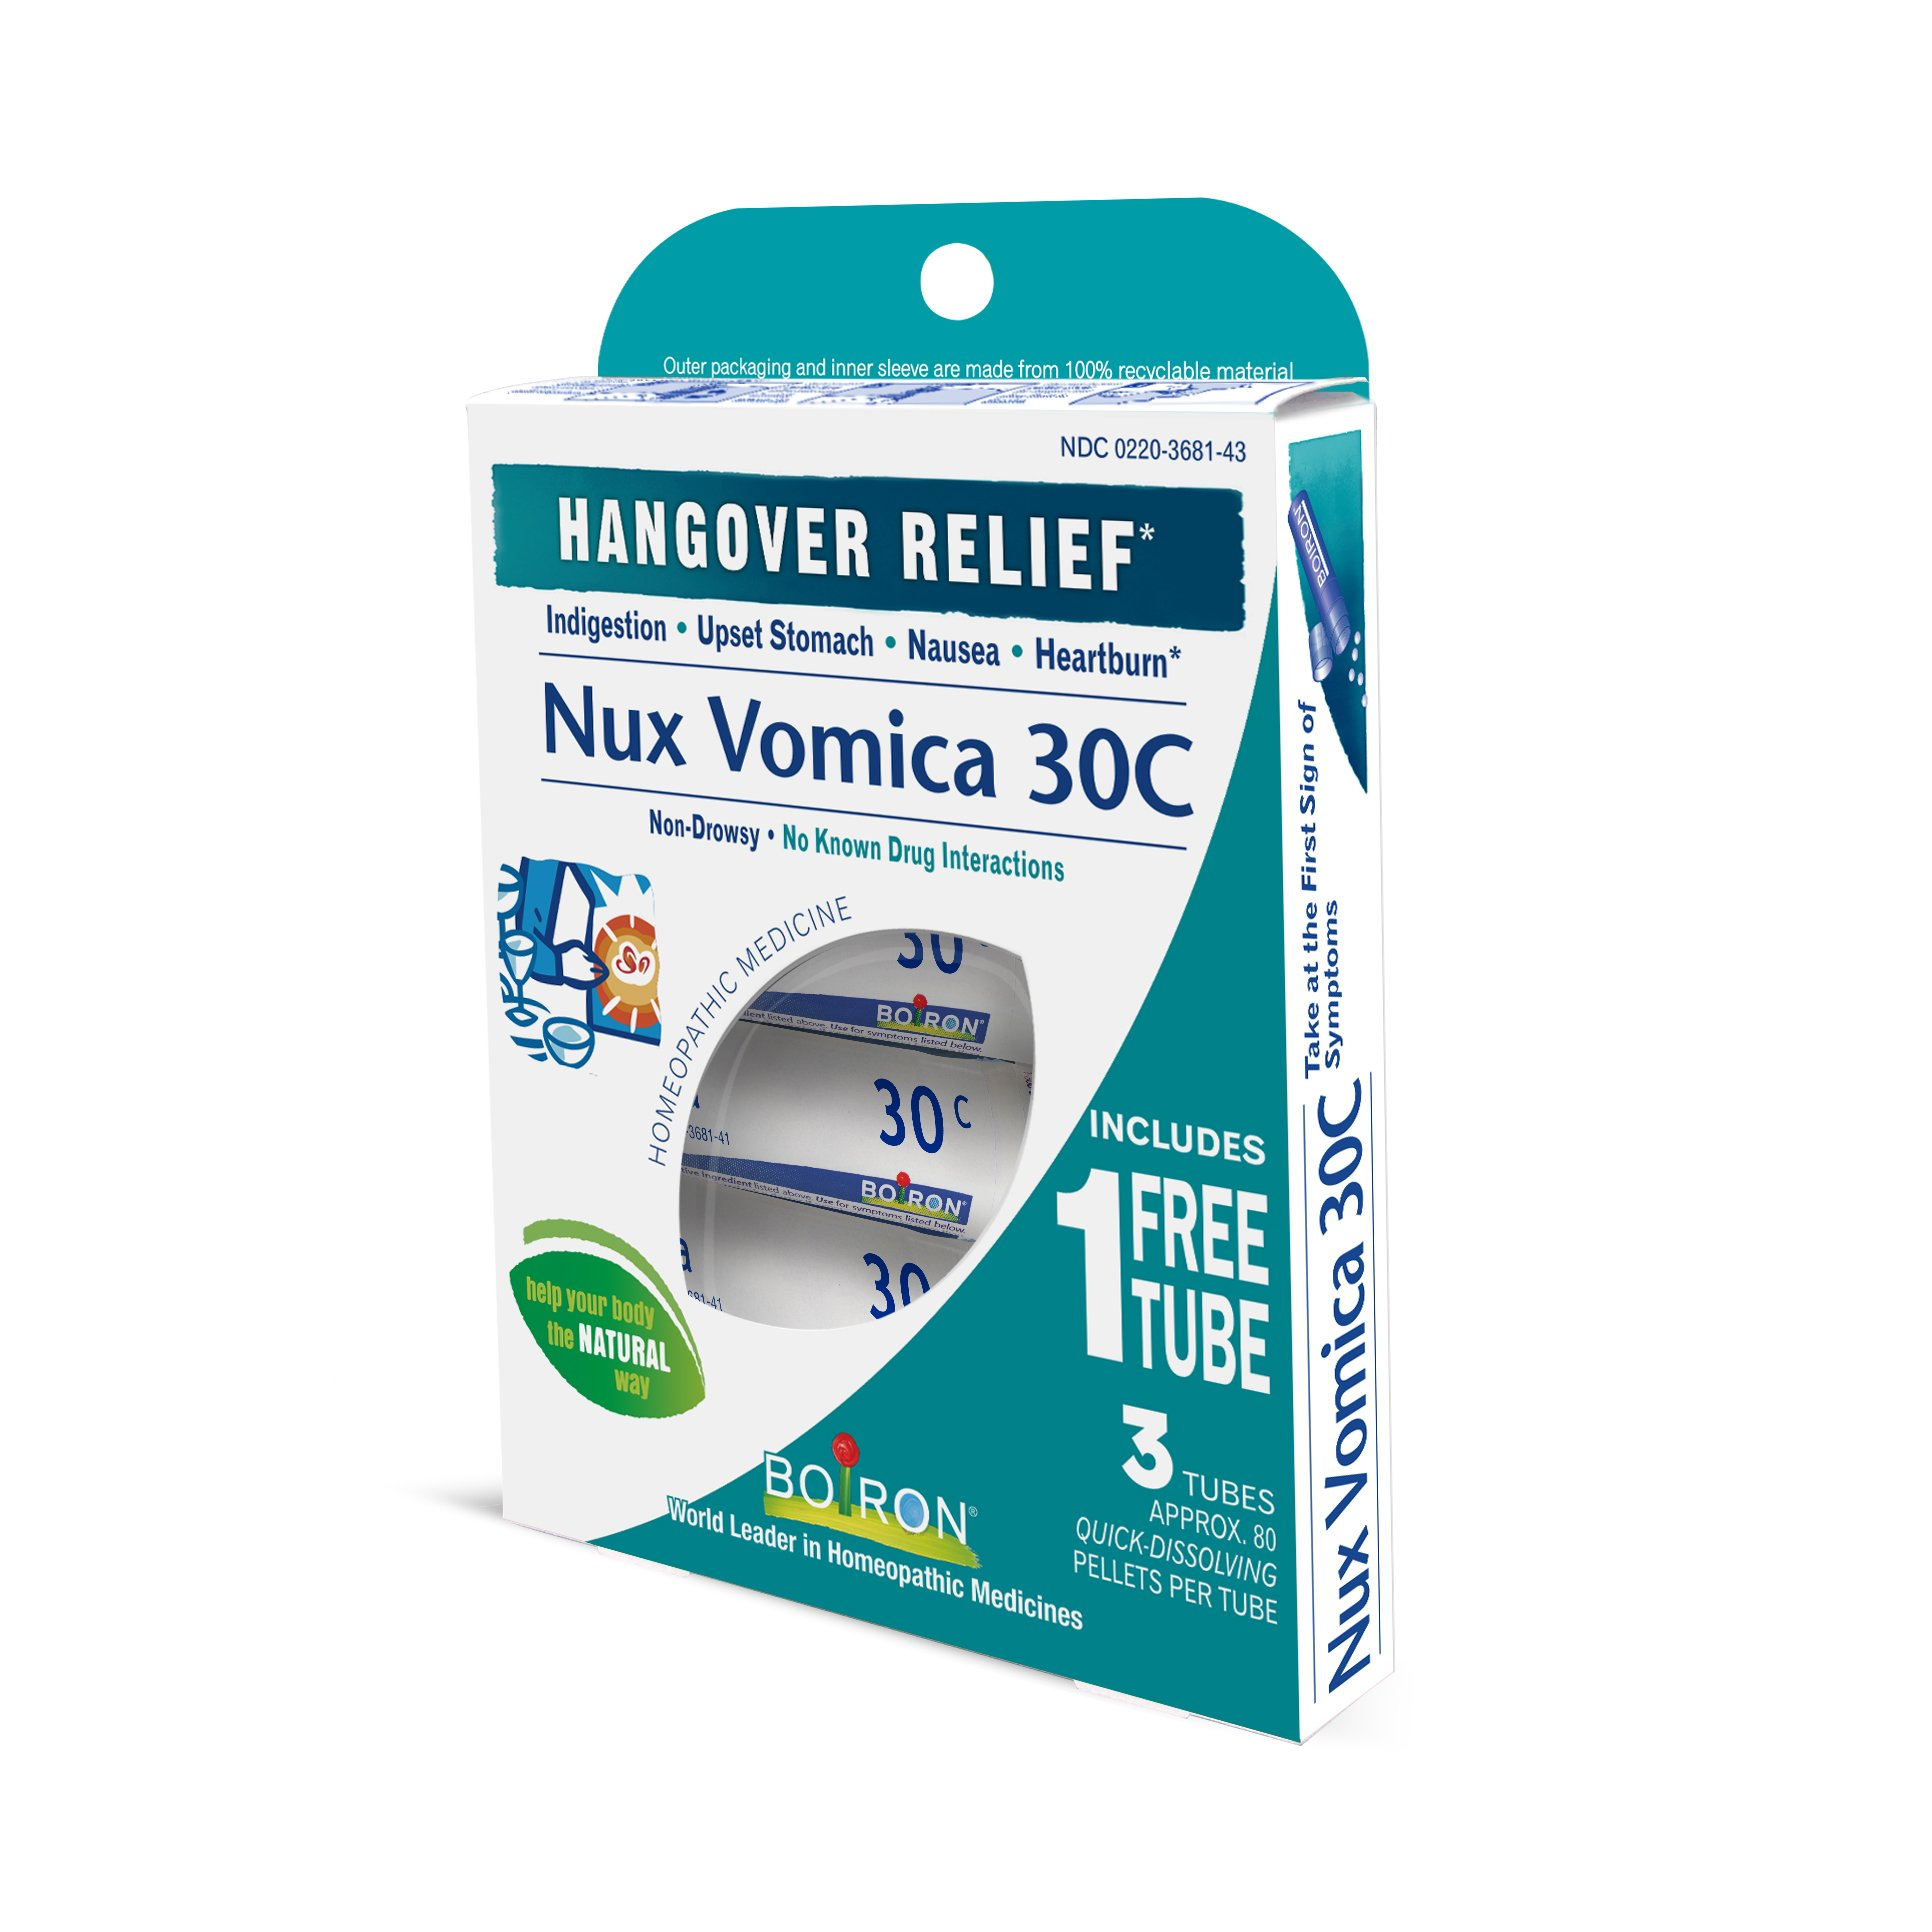 Boiron Nux Vomica 30C (3 Pack), Homeopathic Medicine for Hangover Relief